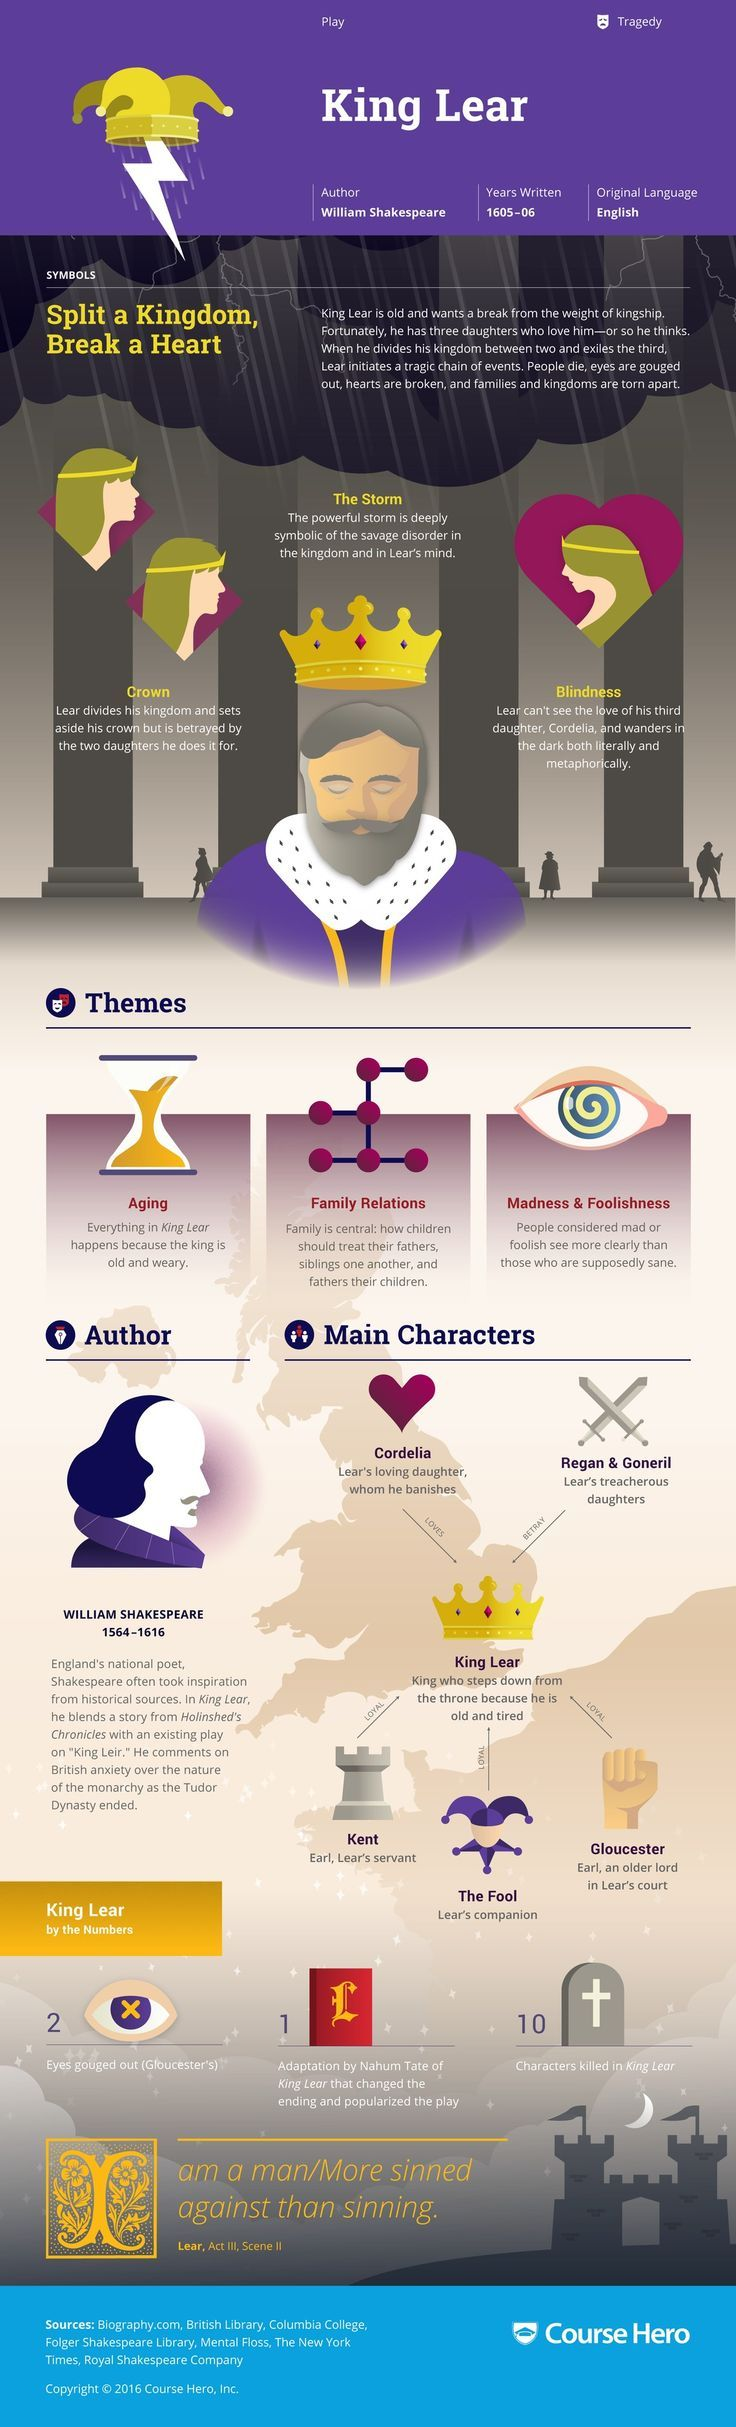 king lear infographic course hero world literature resources king lear infographic course hero